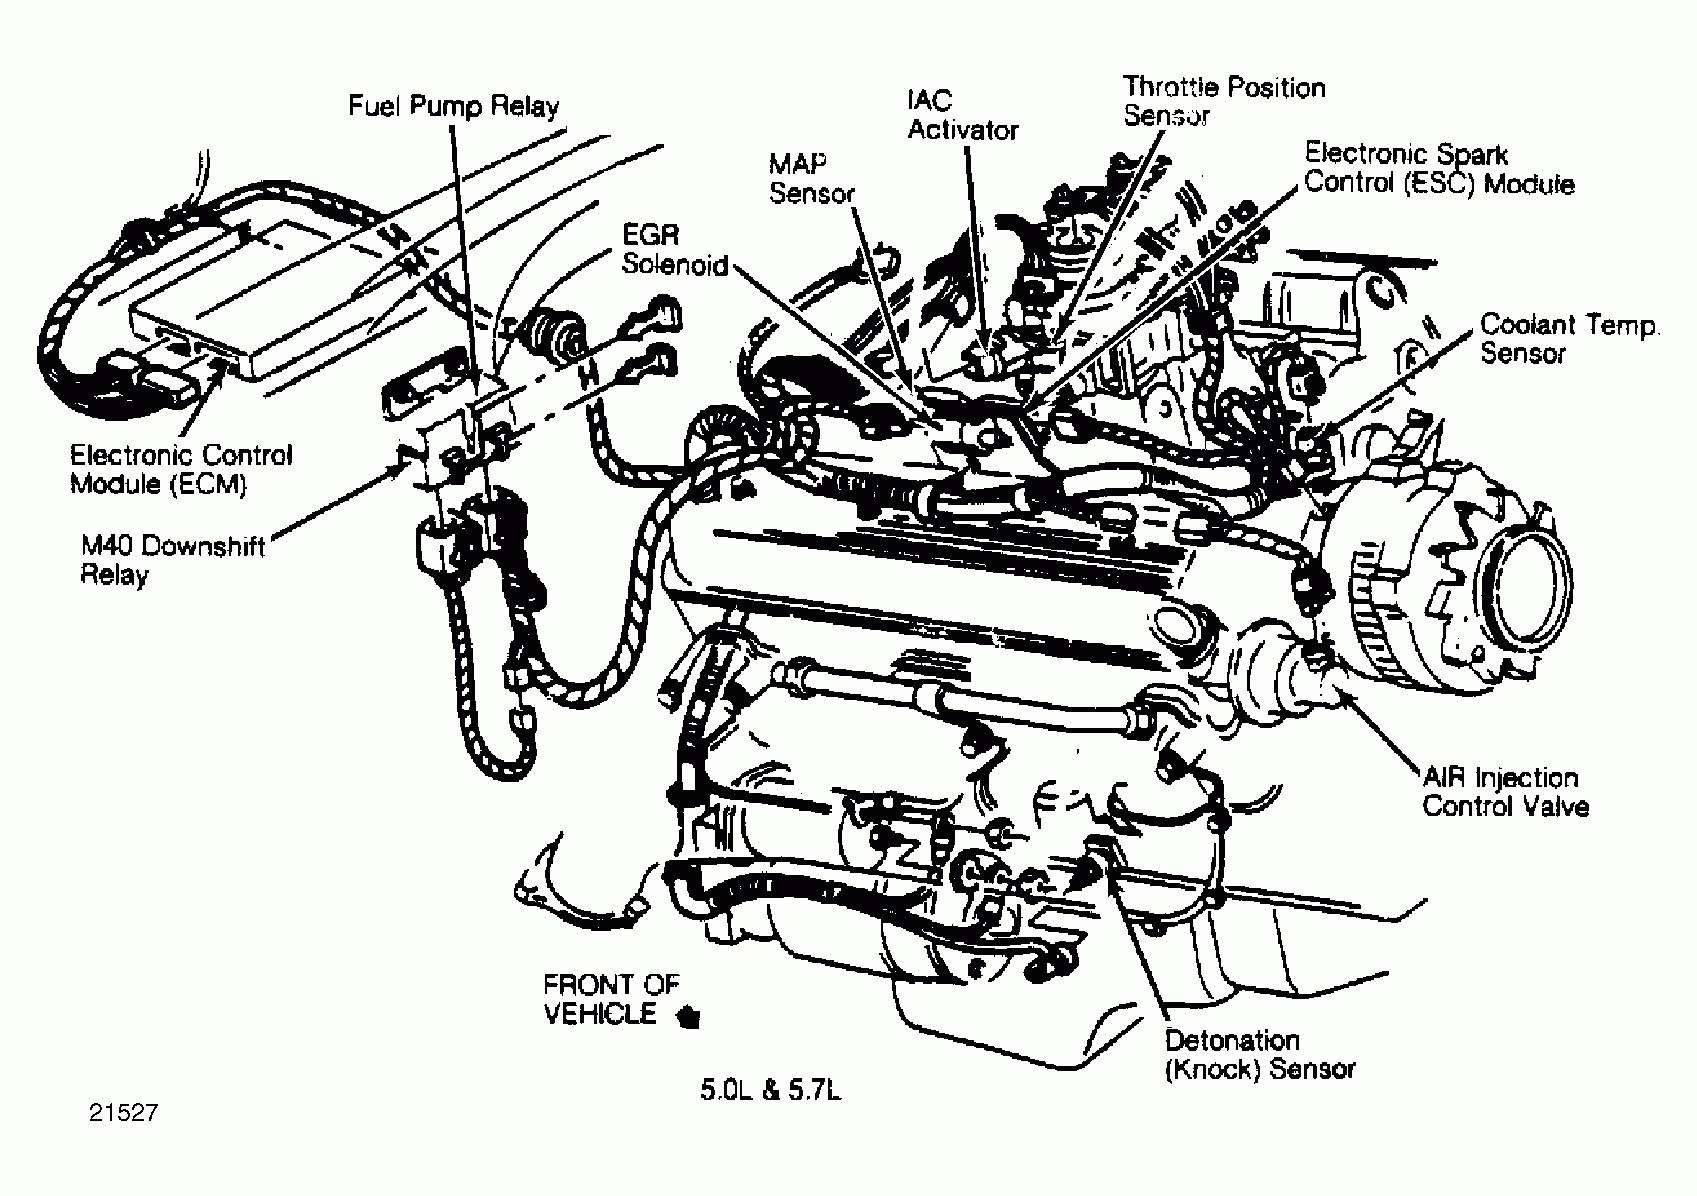 2004 chevy v6 engine diagram - wiring diagrams relax suck-lay -  suck-lay.quado.it  suck-lay.quado.it